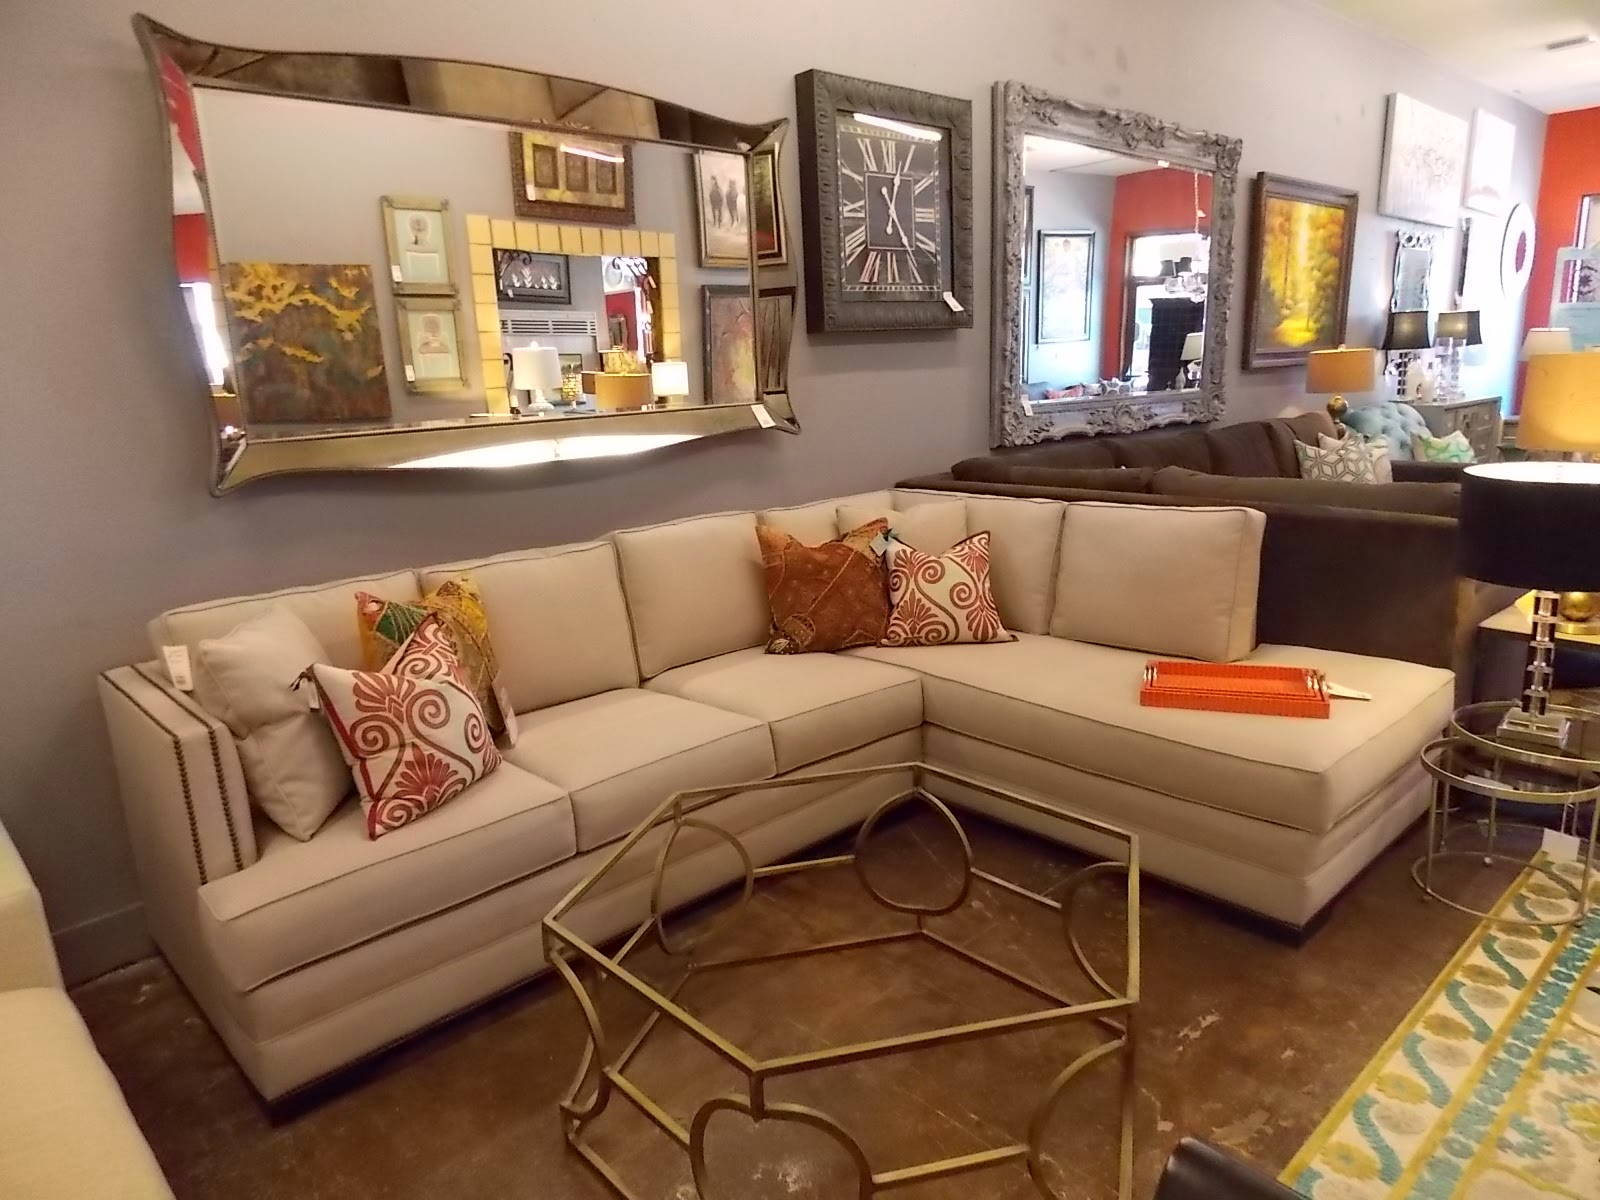 Our Specialists Take Pride In Their Extraordinary Workmanship We Have An Excellent Upholstery Service Sherman Oaks Many Customers Request